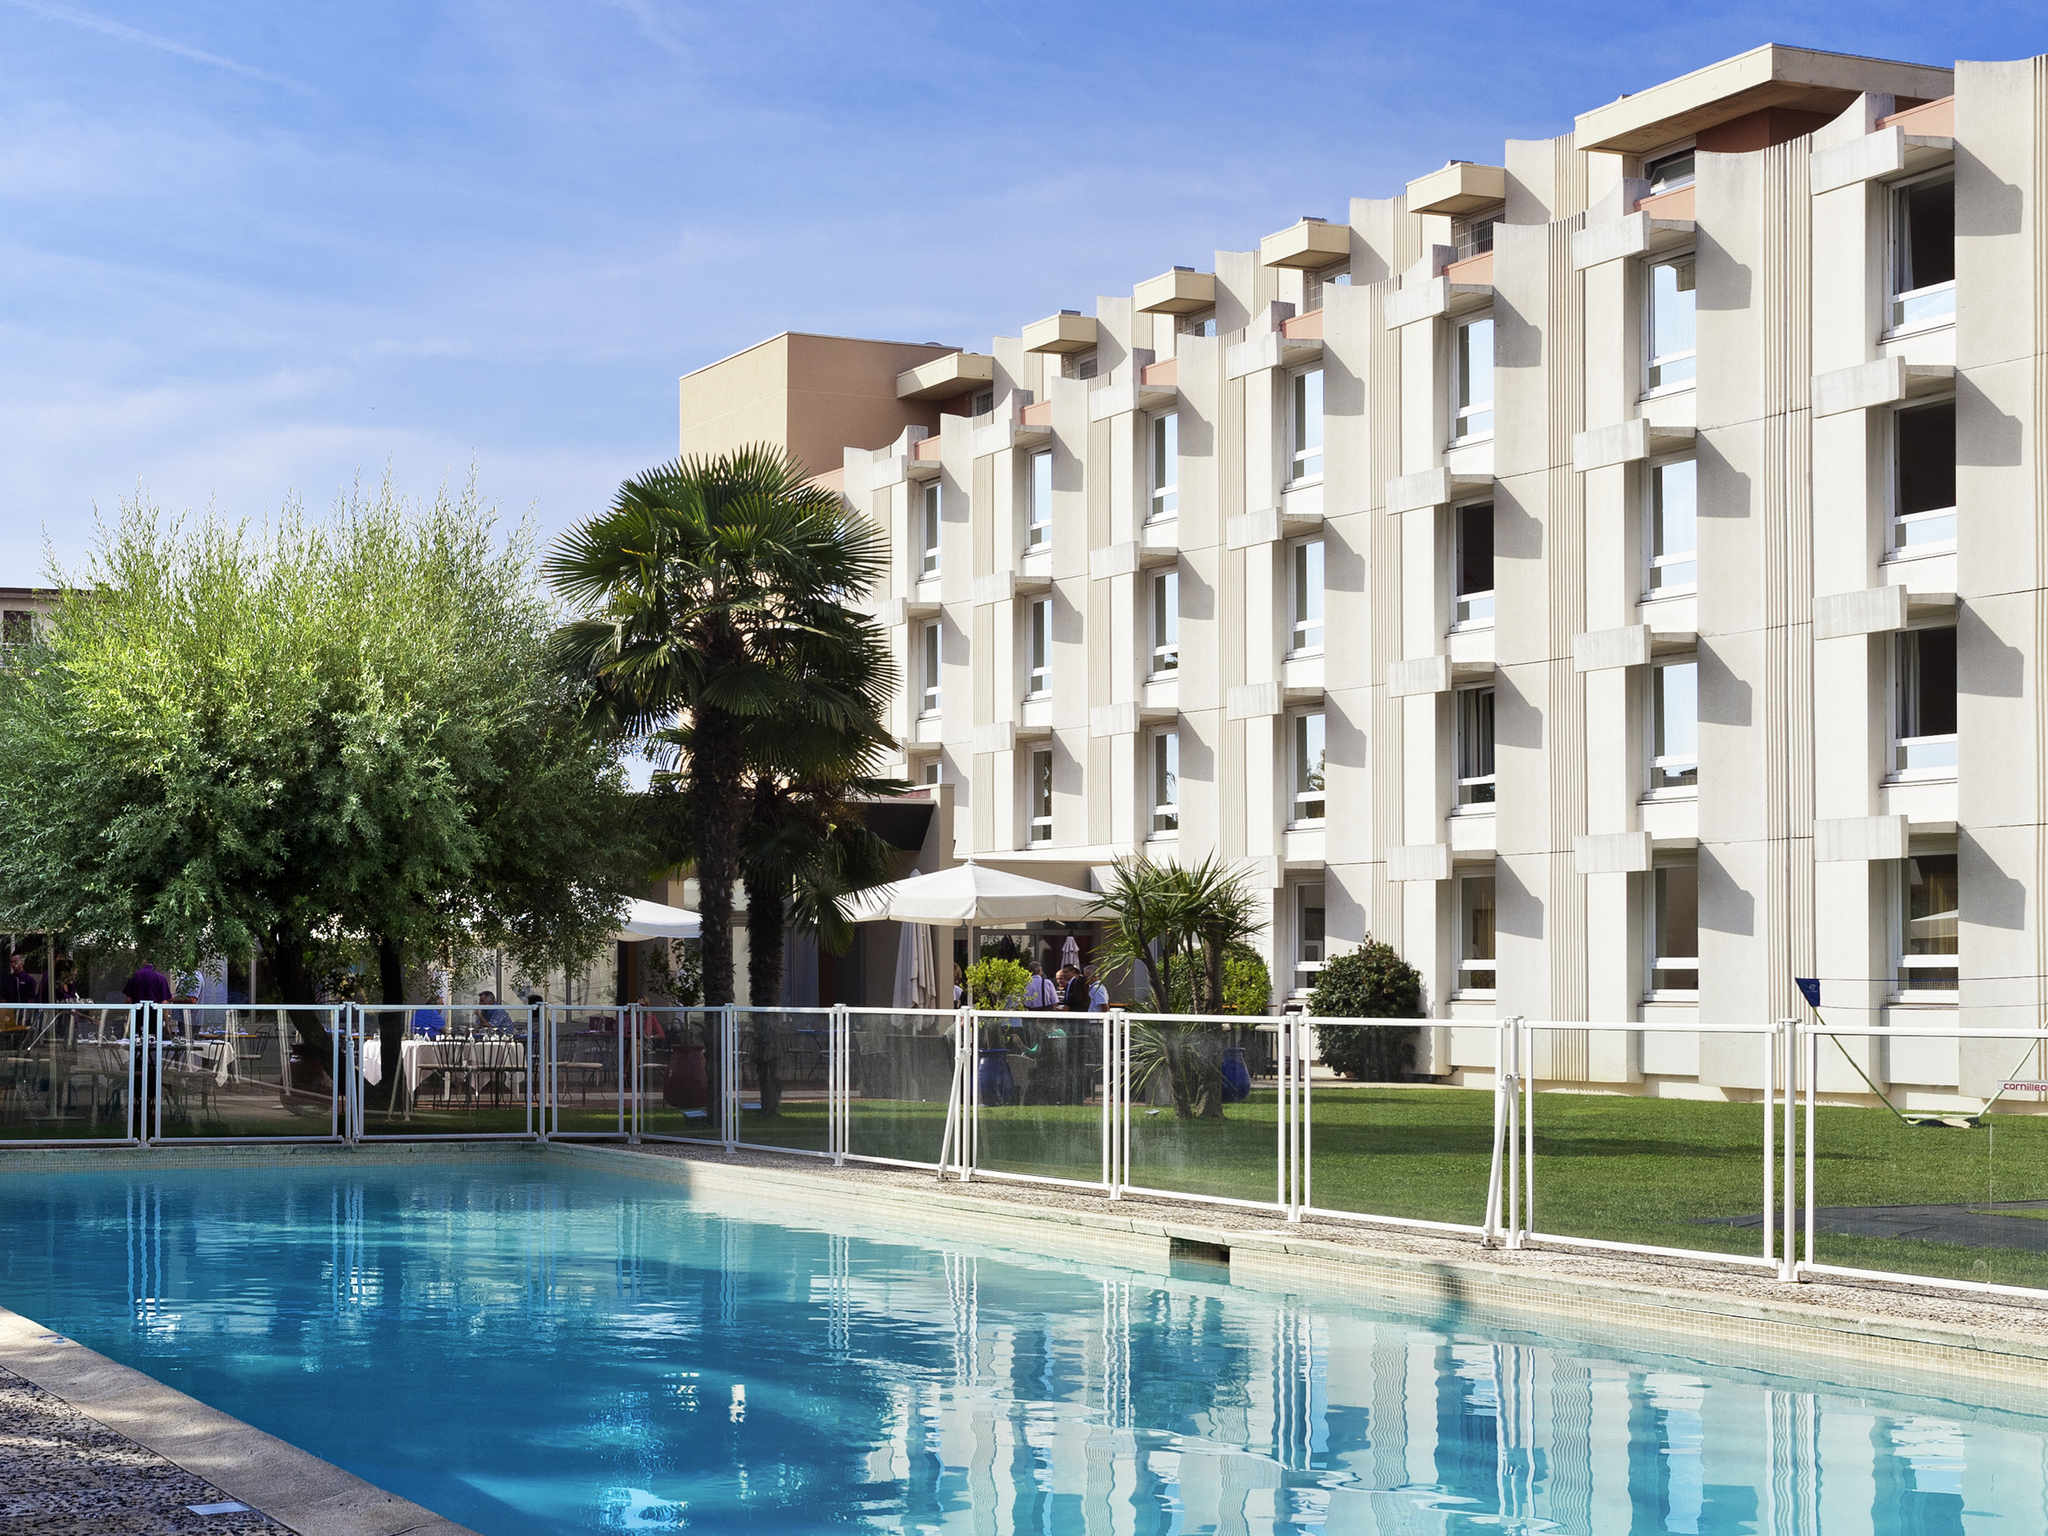 Hotell – Novotel Nice Aéroport Cap 3000